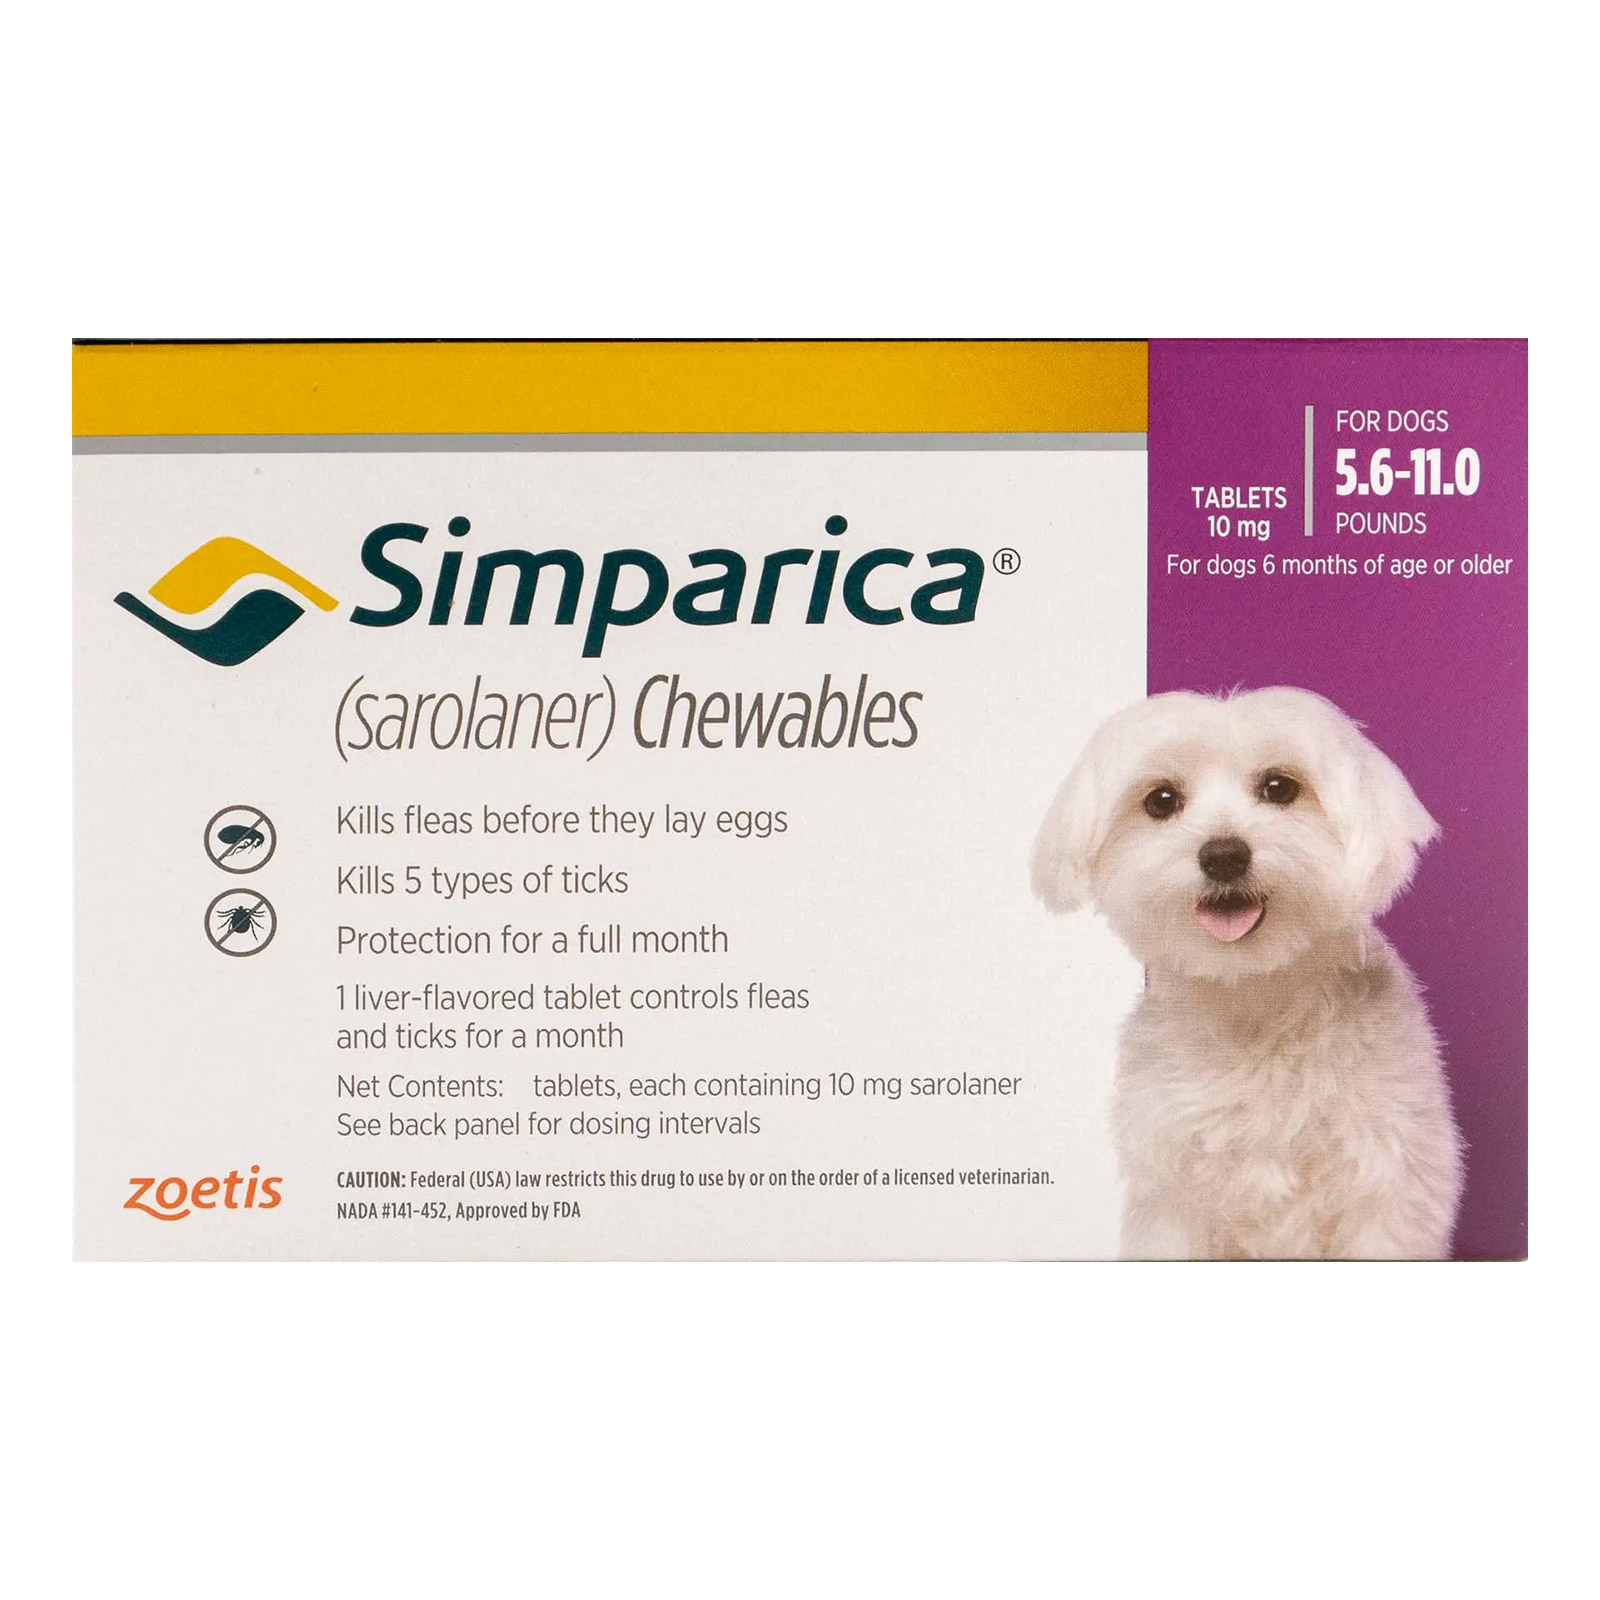 Simparica For Dogs 5.6-11 Lbs Purple 3 Pack